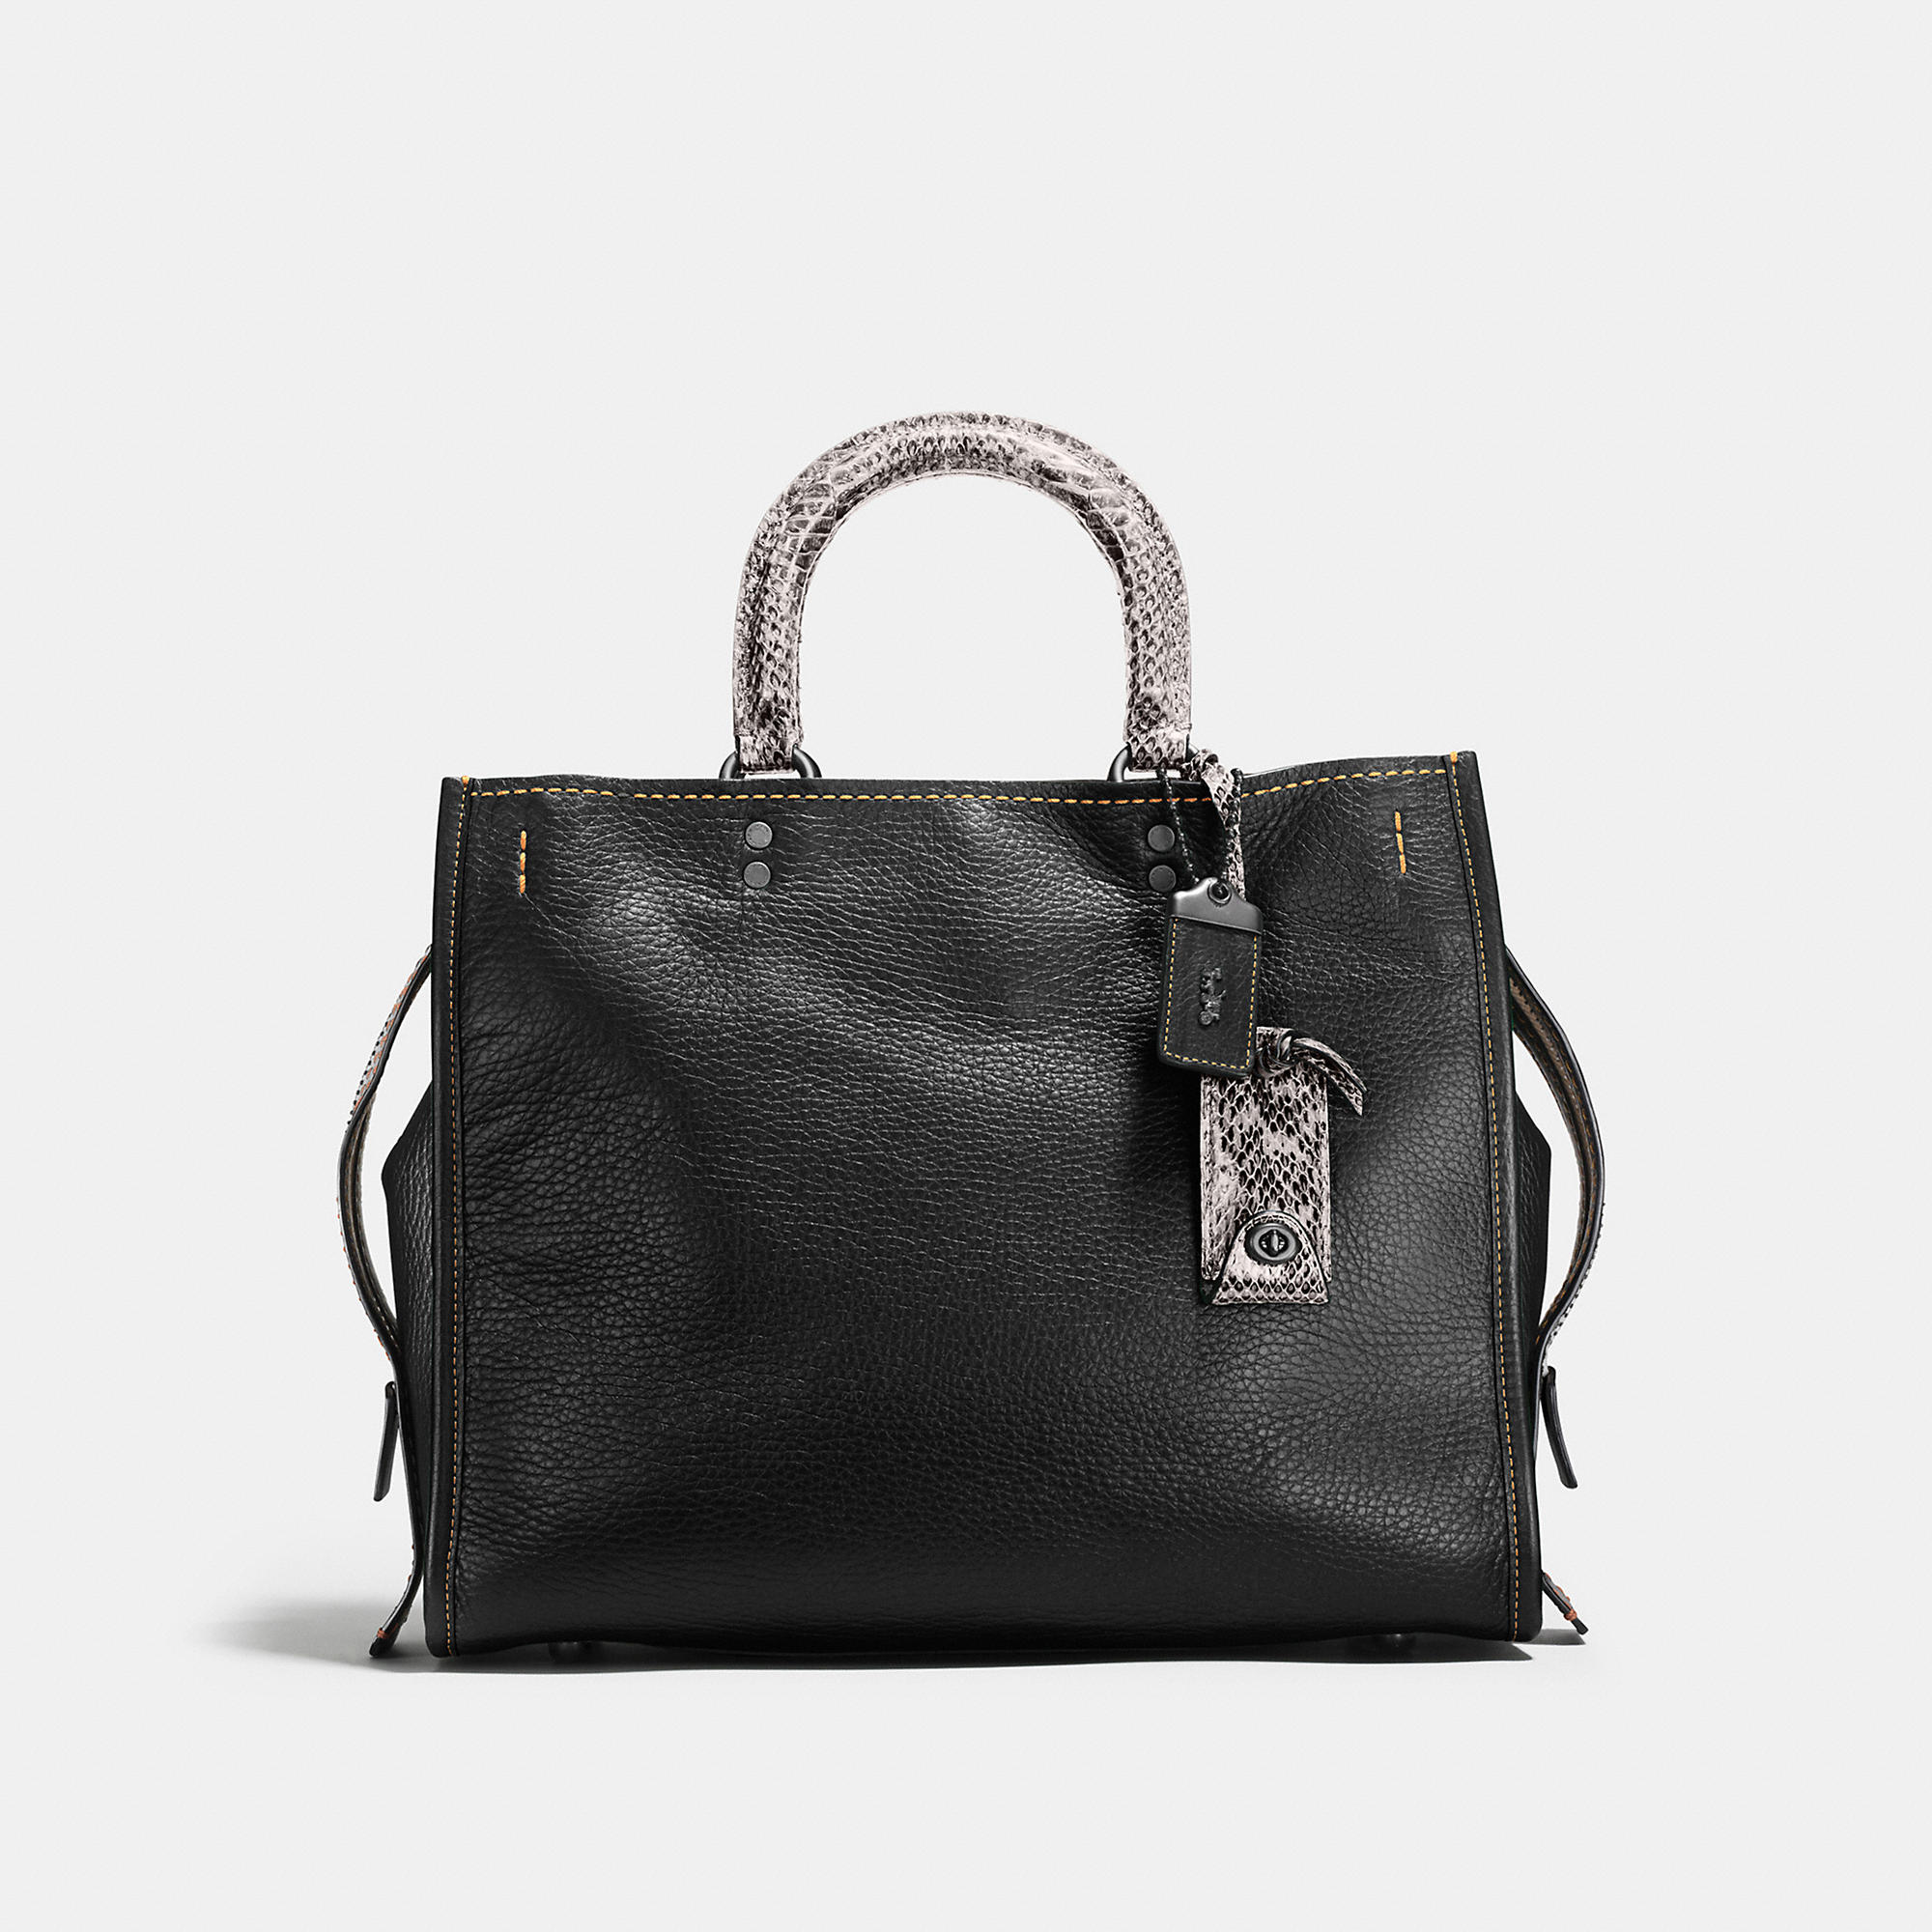 Coach Rogue In Glovetanned Pebble Leather With Colorblock Snake Detail